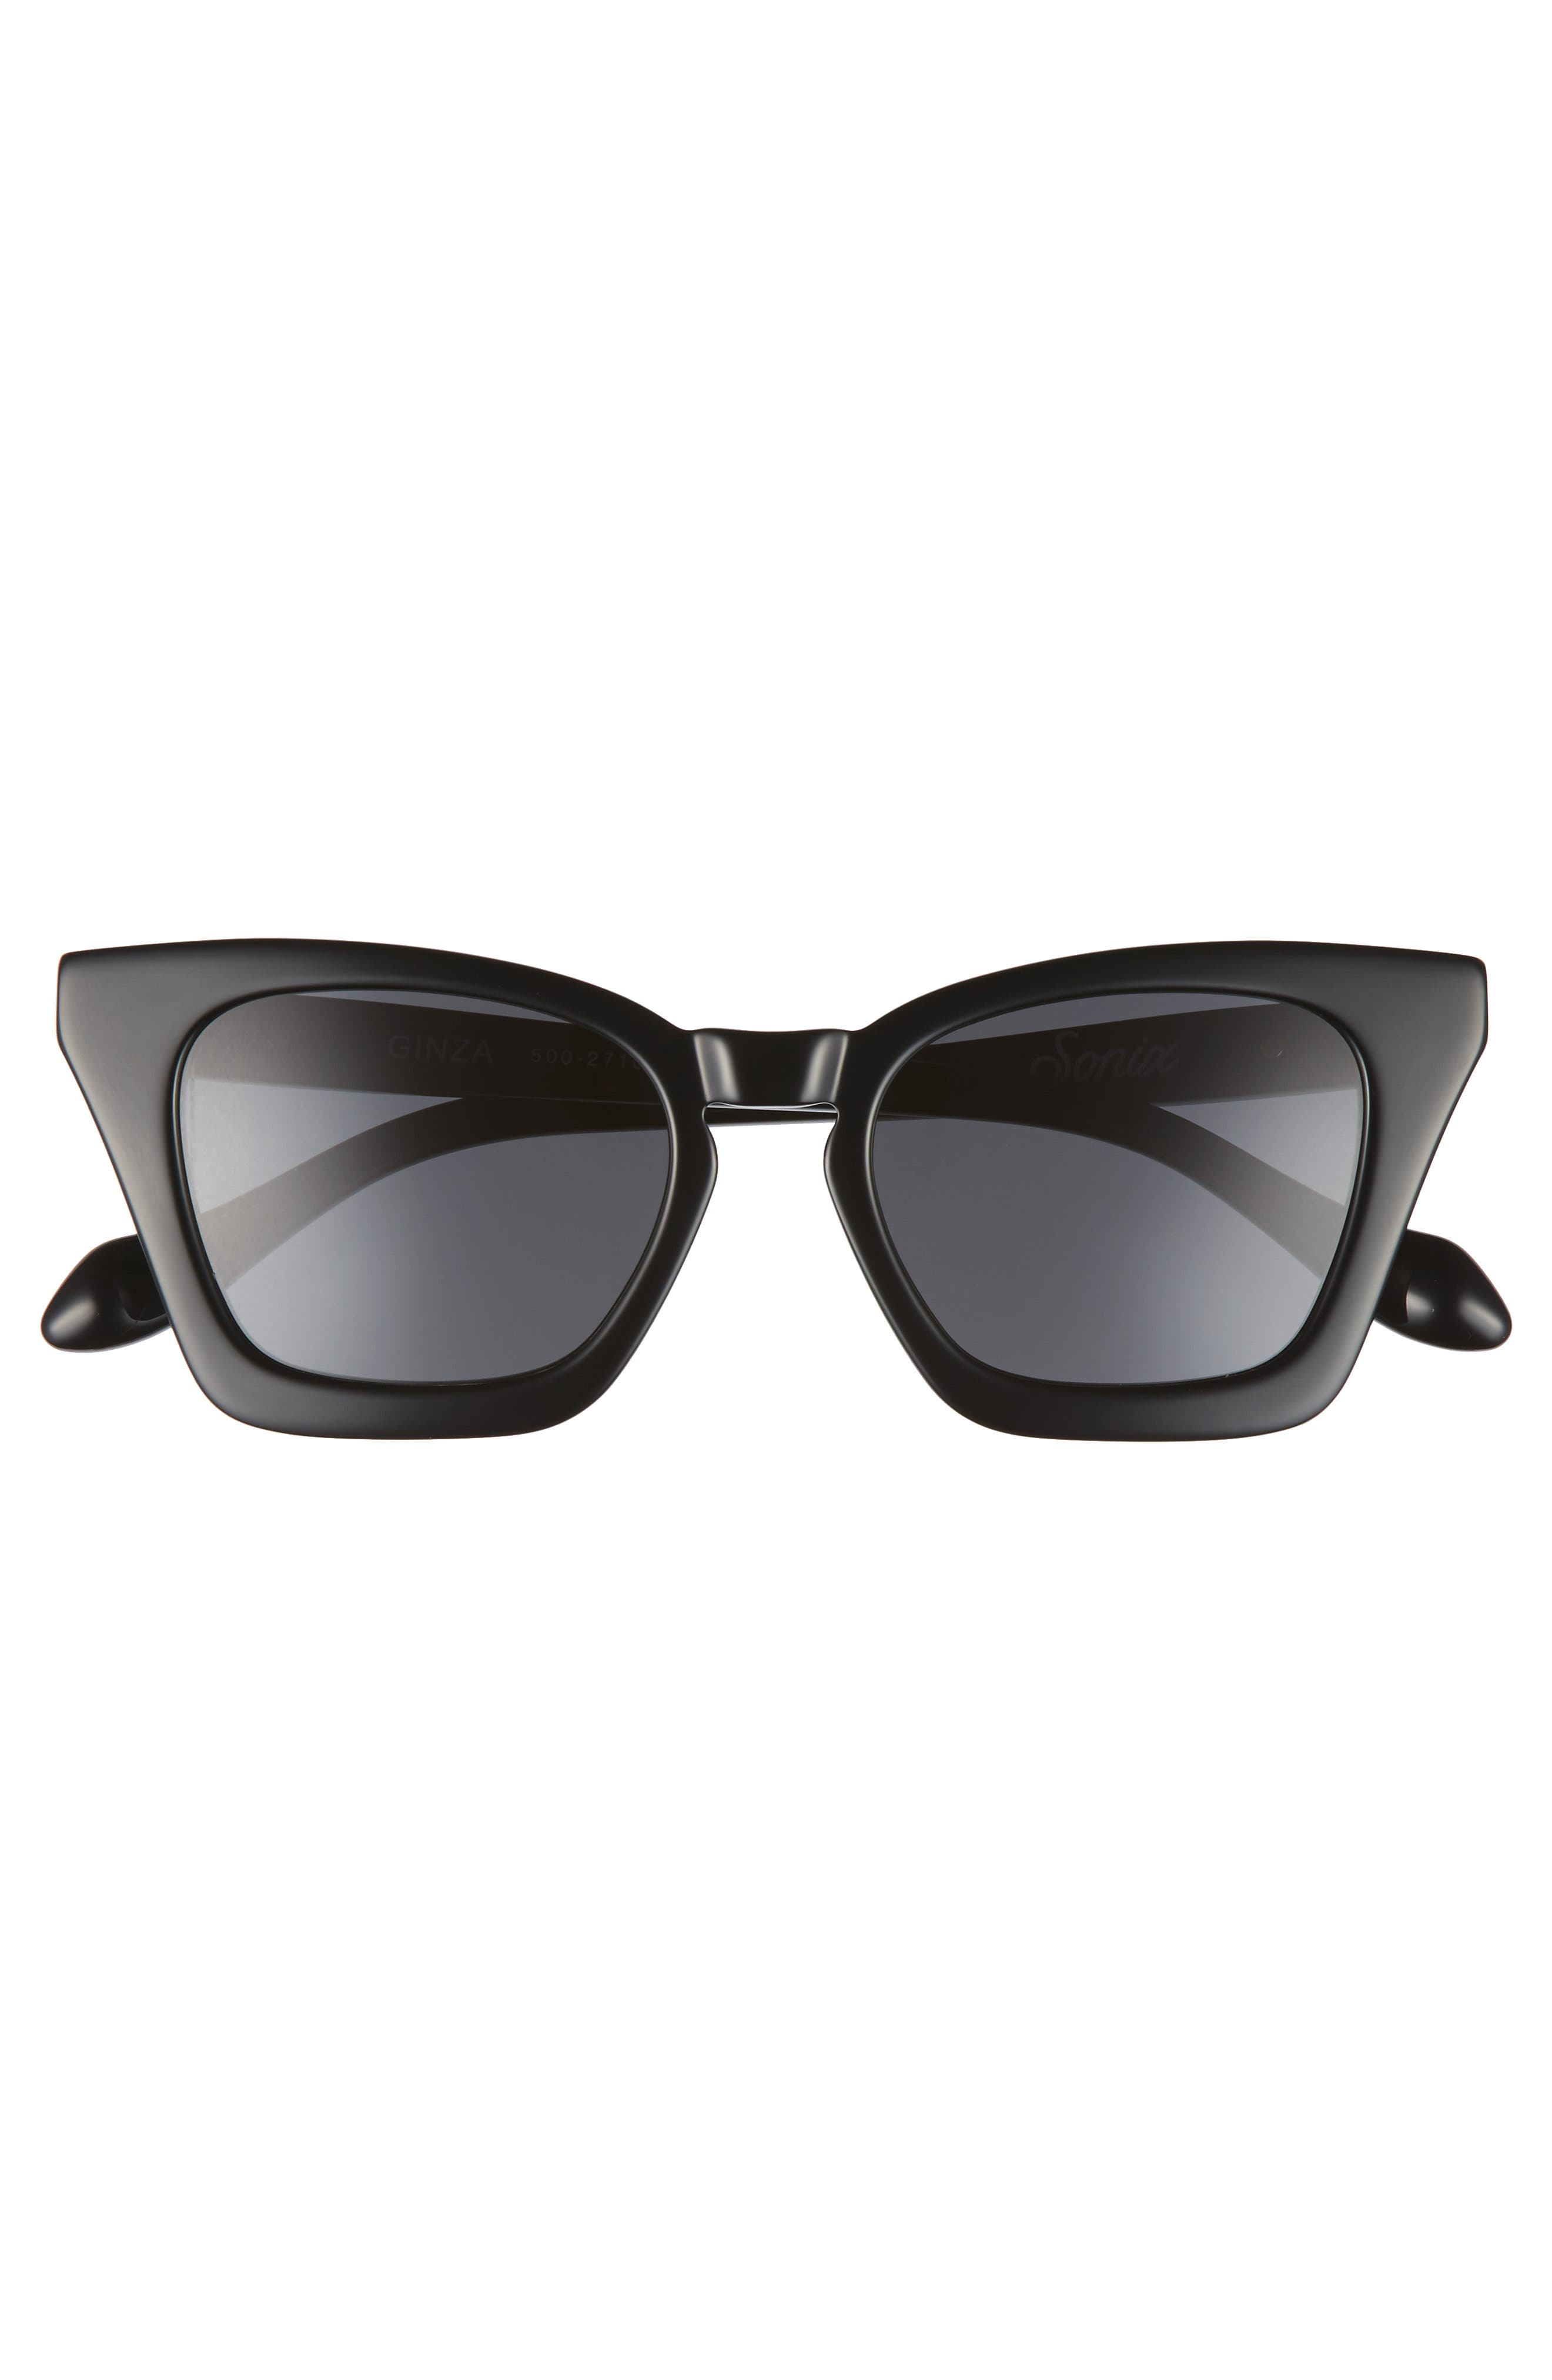 Ginza 50mm Cat Eye Sunglasses,                             Alternate thumbnail 3, color,                             001